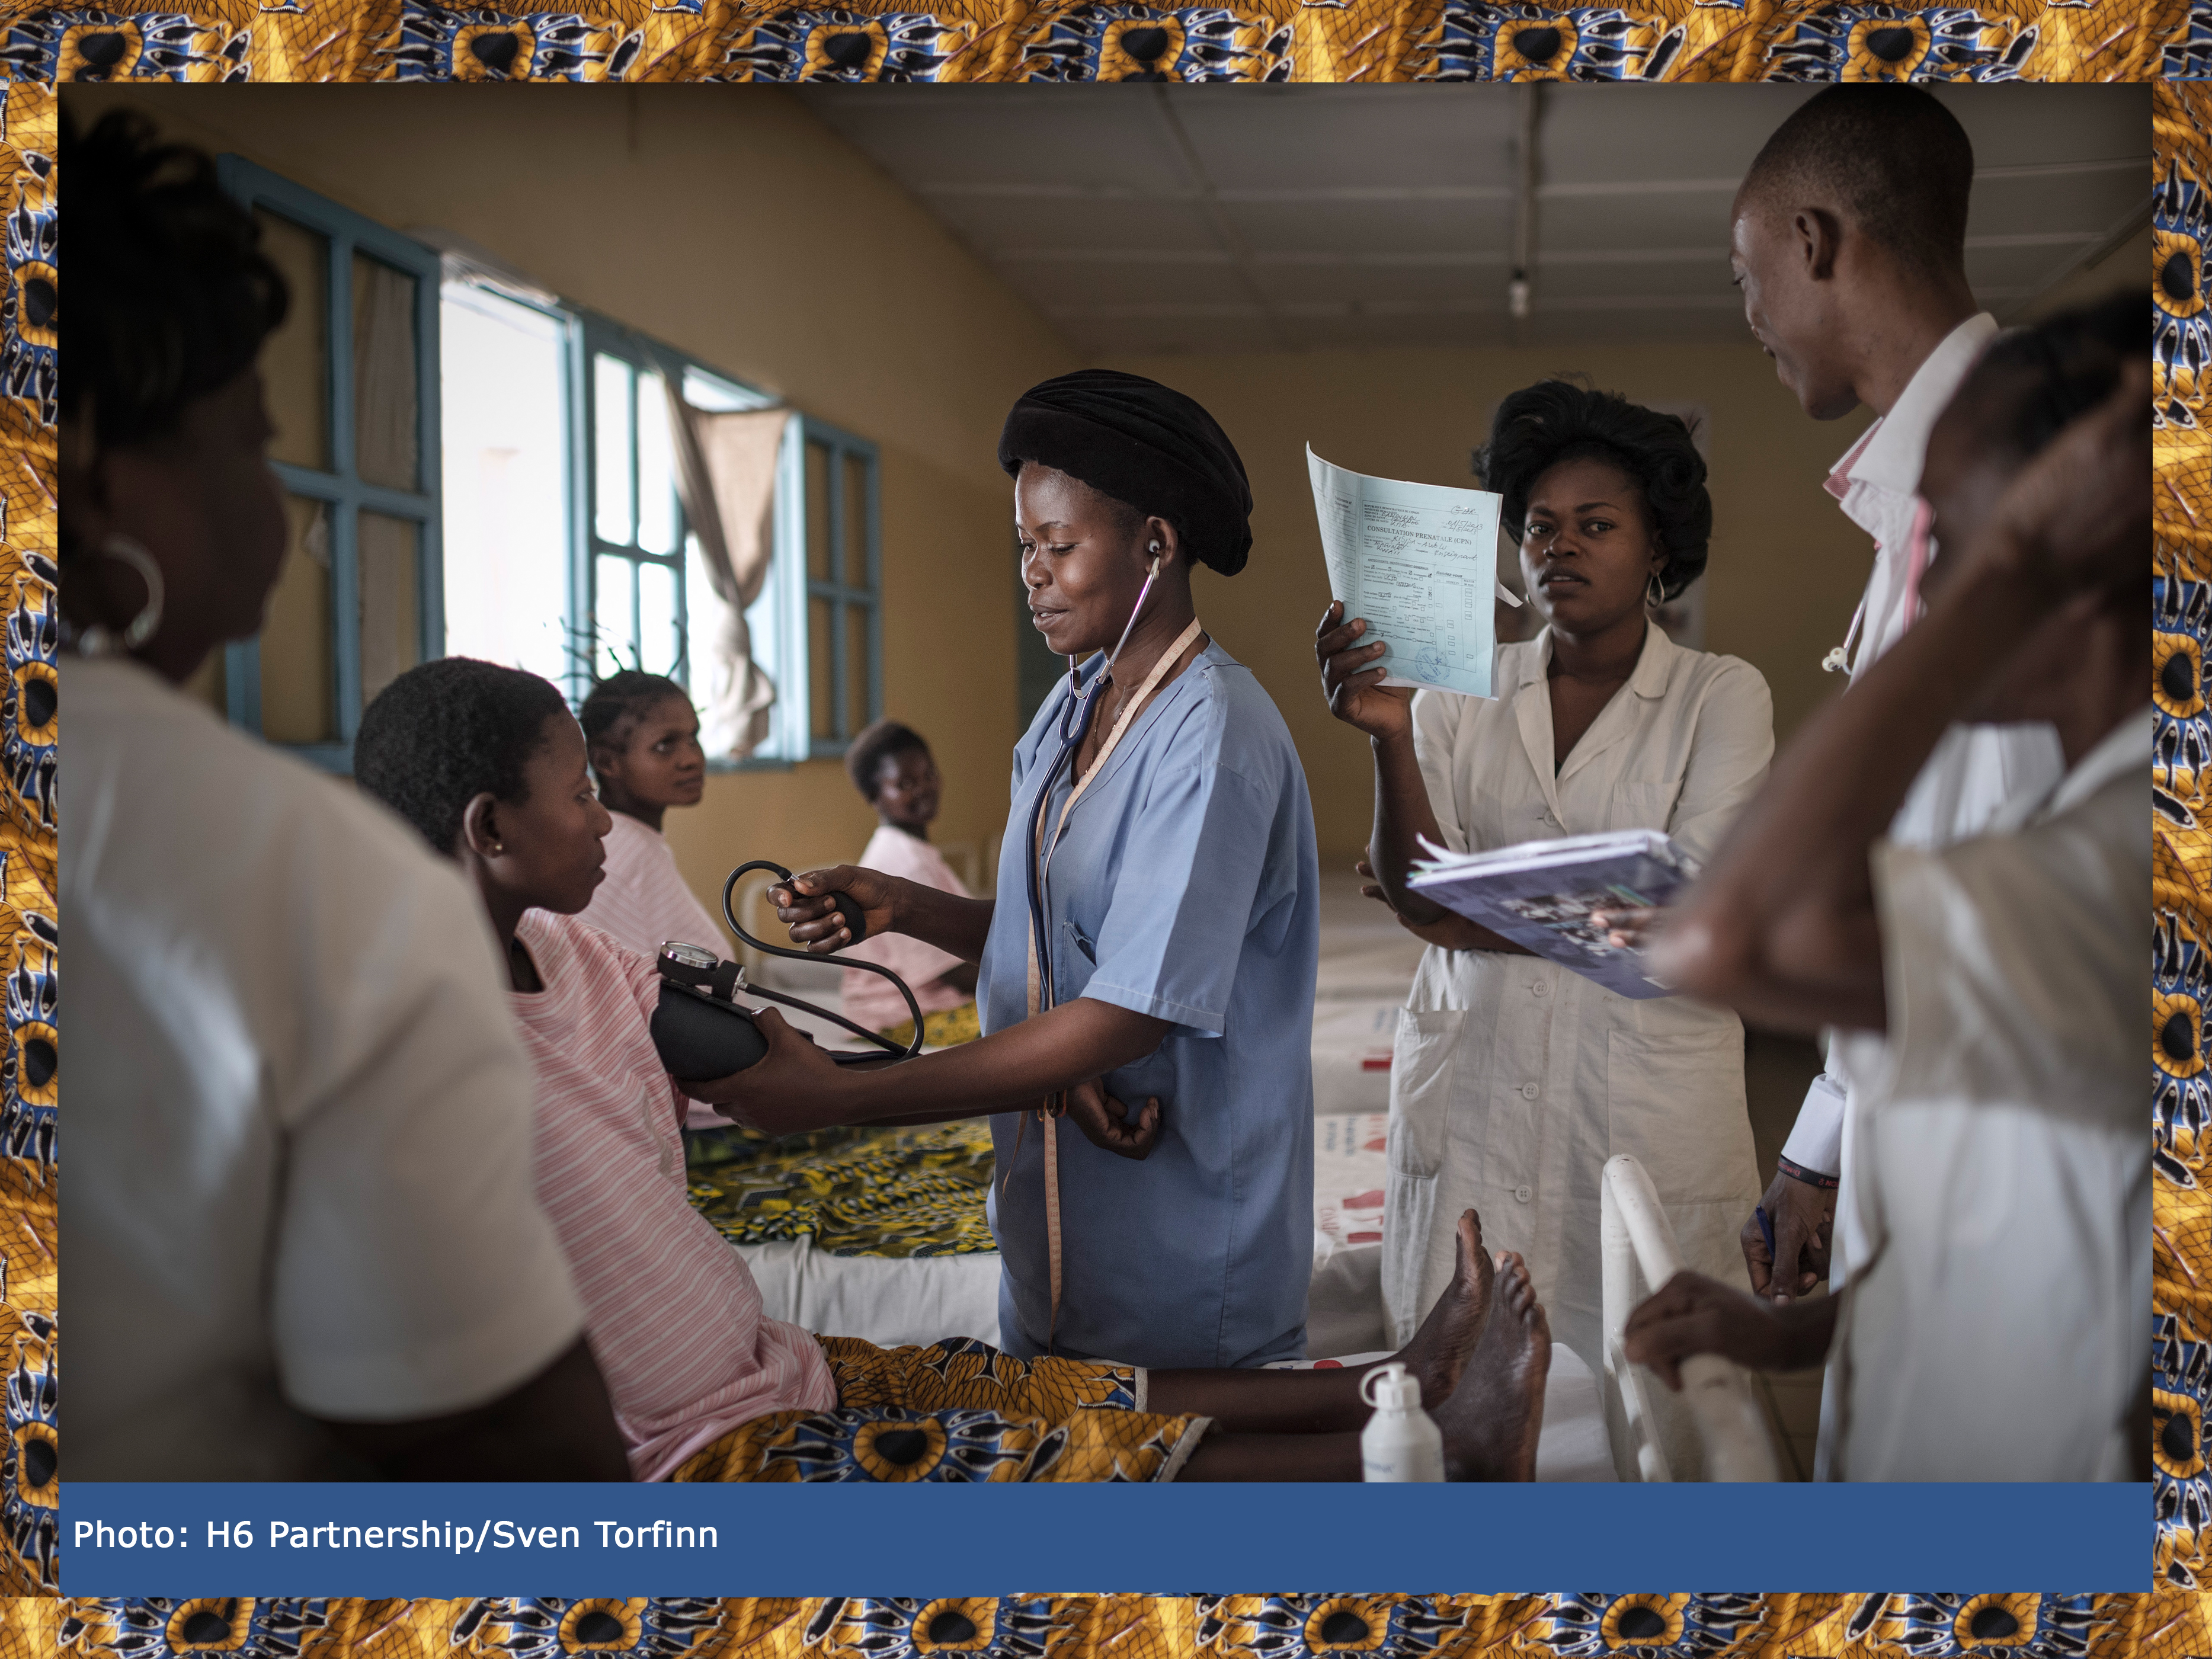 Women in a hospital in the Democratic Republic of the Congo